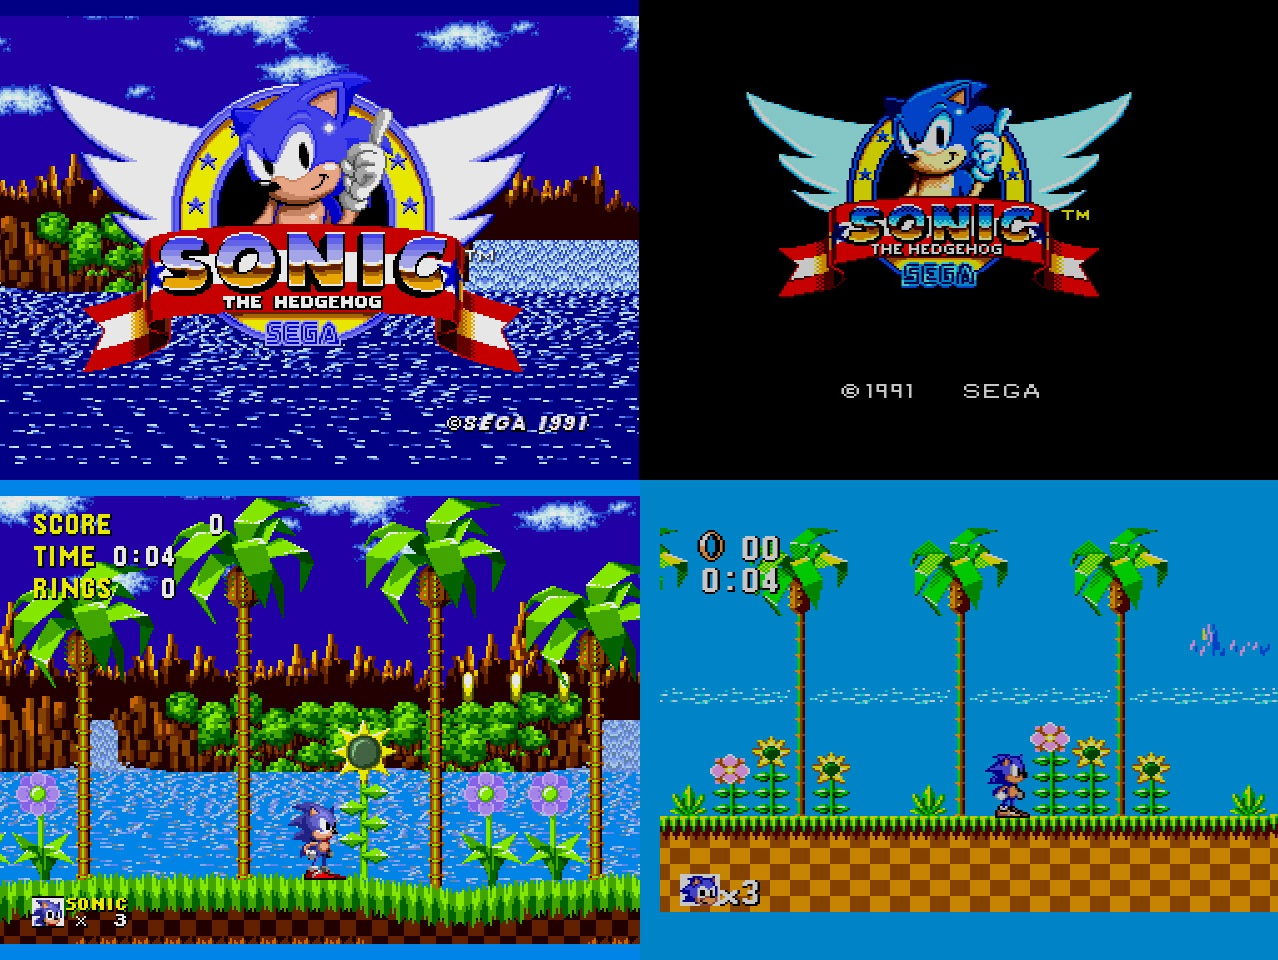 Sonic the Hedgehog 8-bit 16-bit